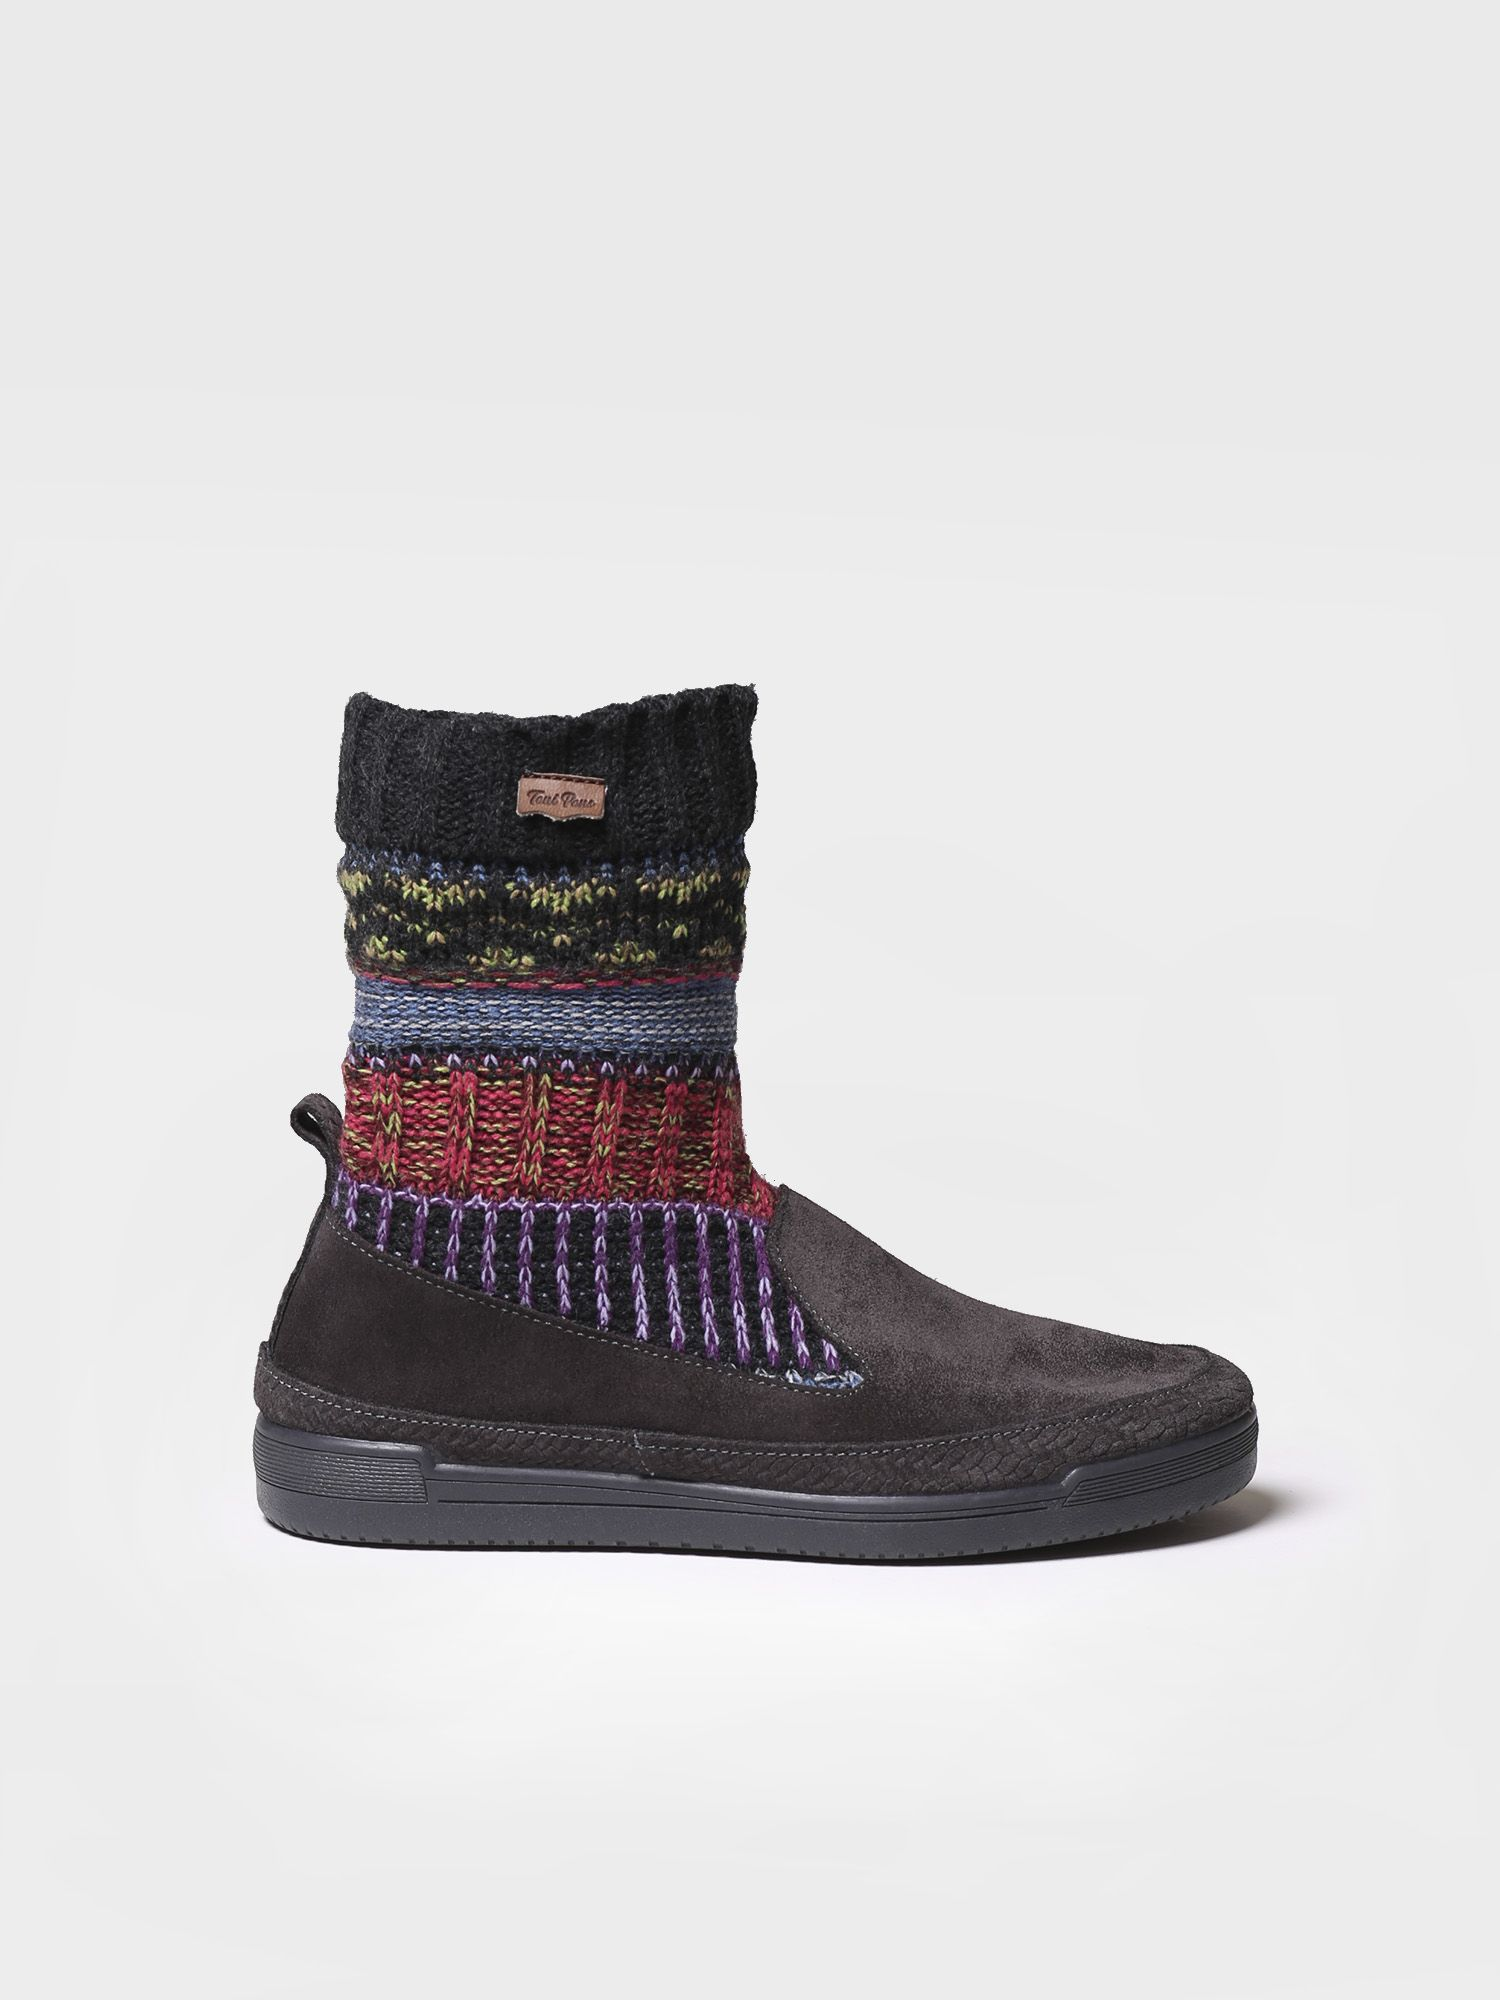 Sneaker for women made of suede and wool - GORA-AF